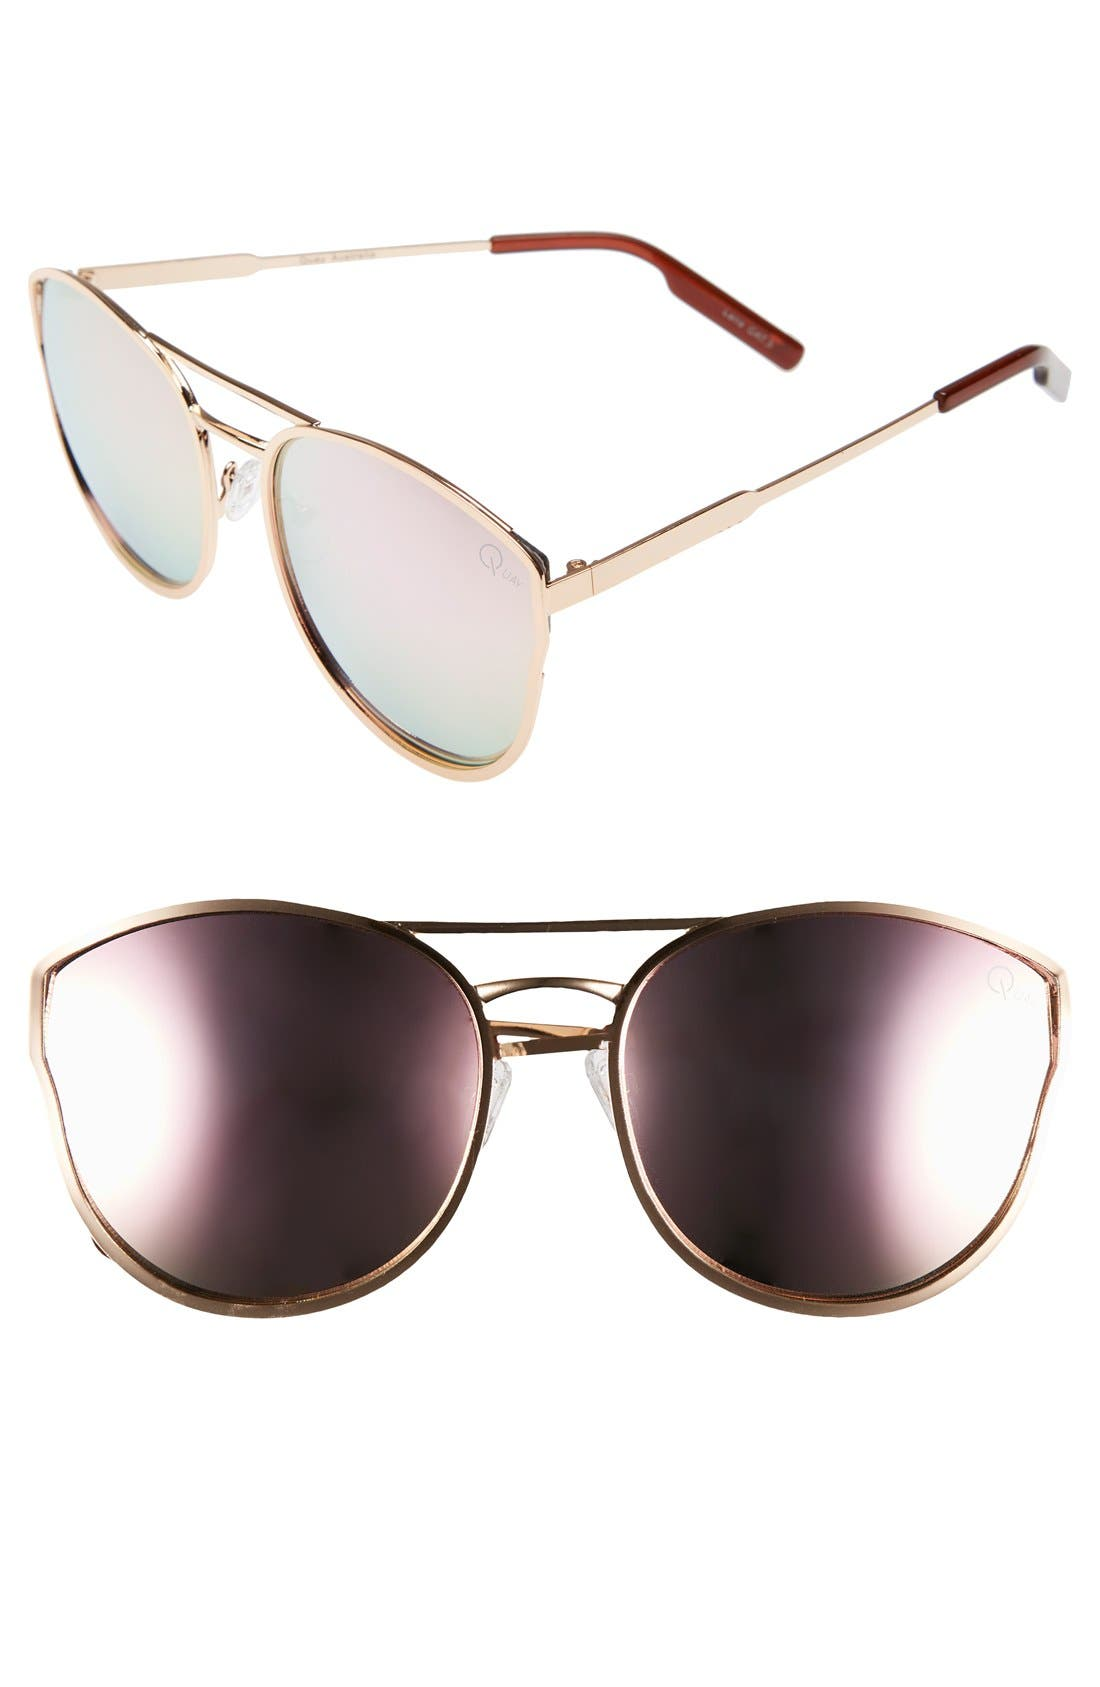 Cherry Bomb 60mm Sunglasses,                         Main,                         color, ROSE GOLD/ PINK